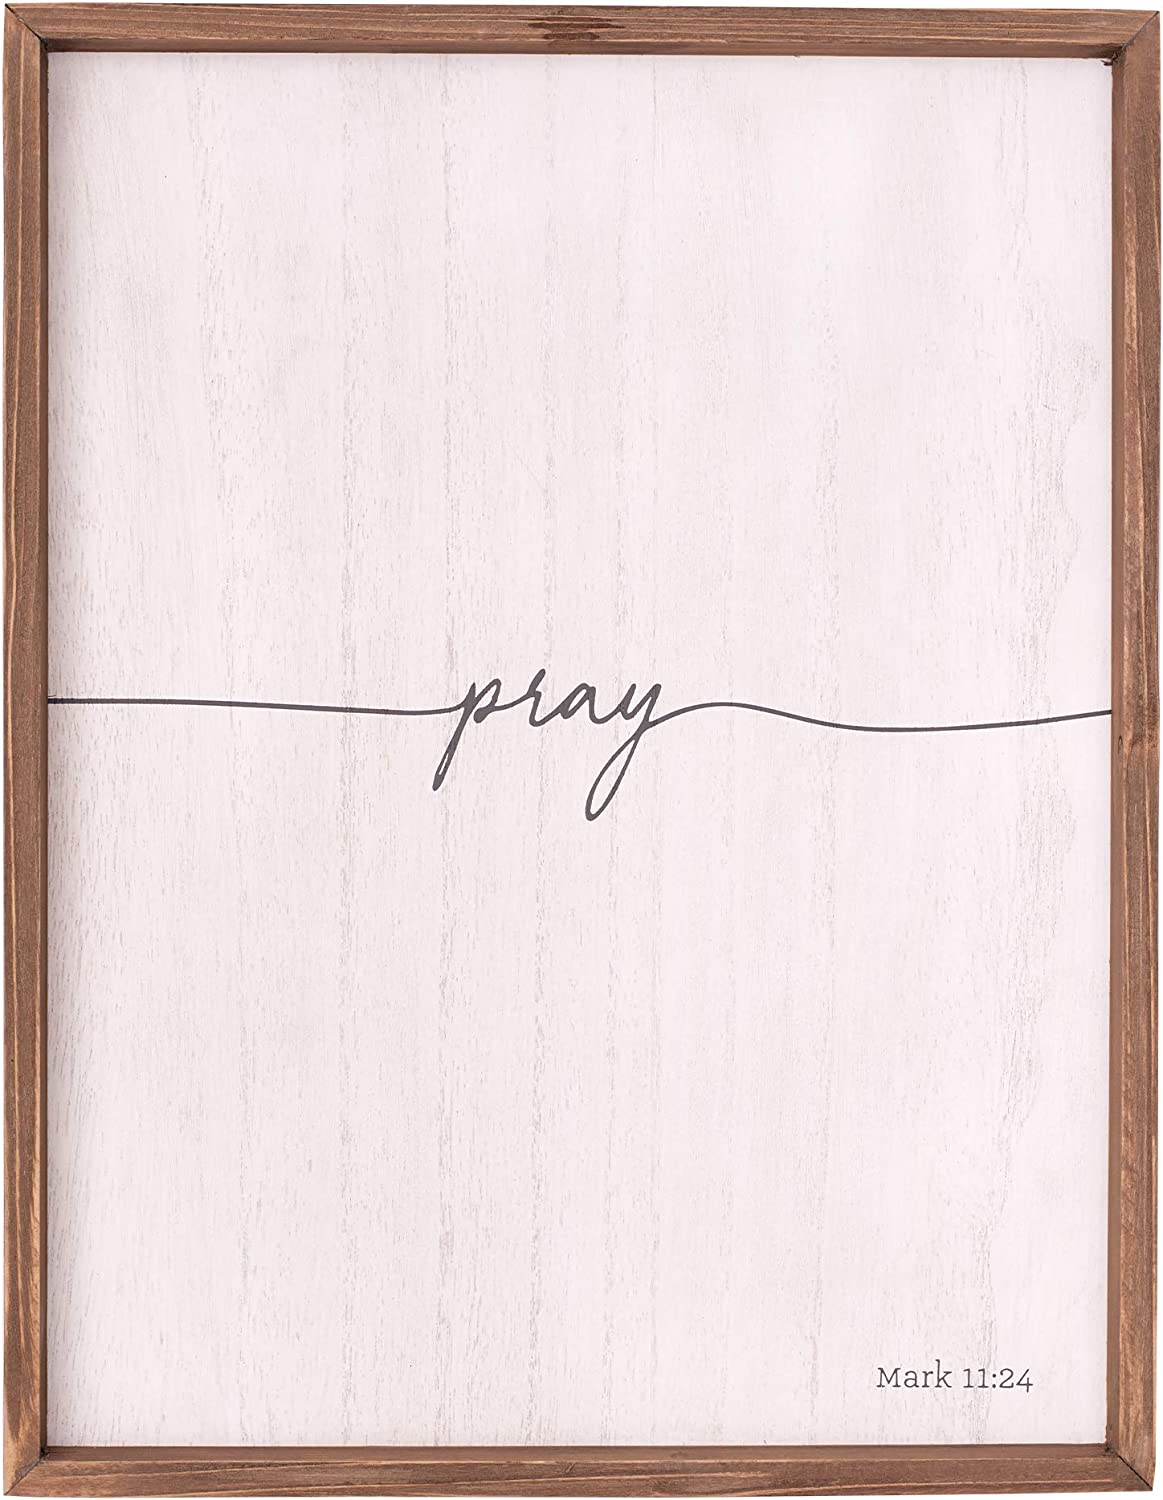 Gorgeous New Shipping Free Shipping Christian Art Gifts Pray 11:24 Plaque Wall Mark